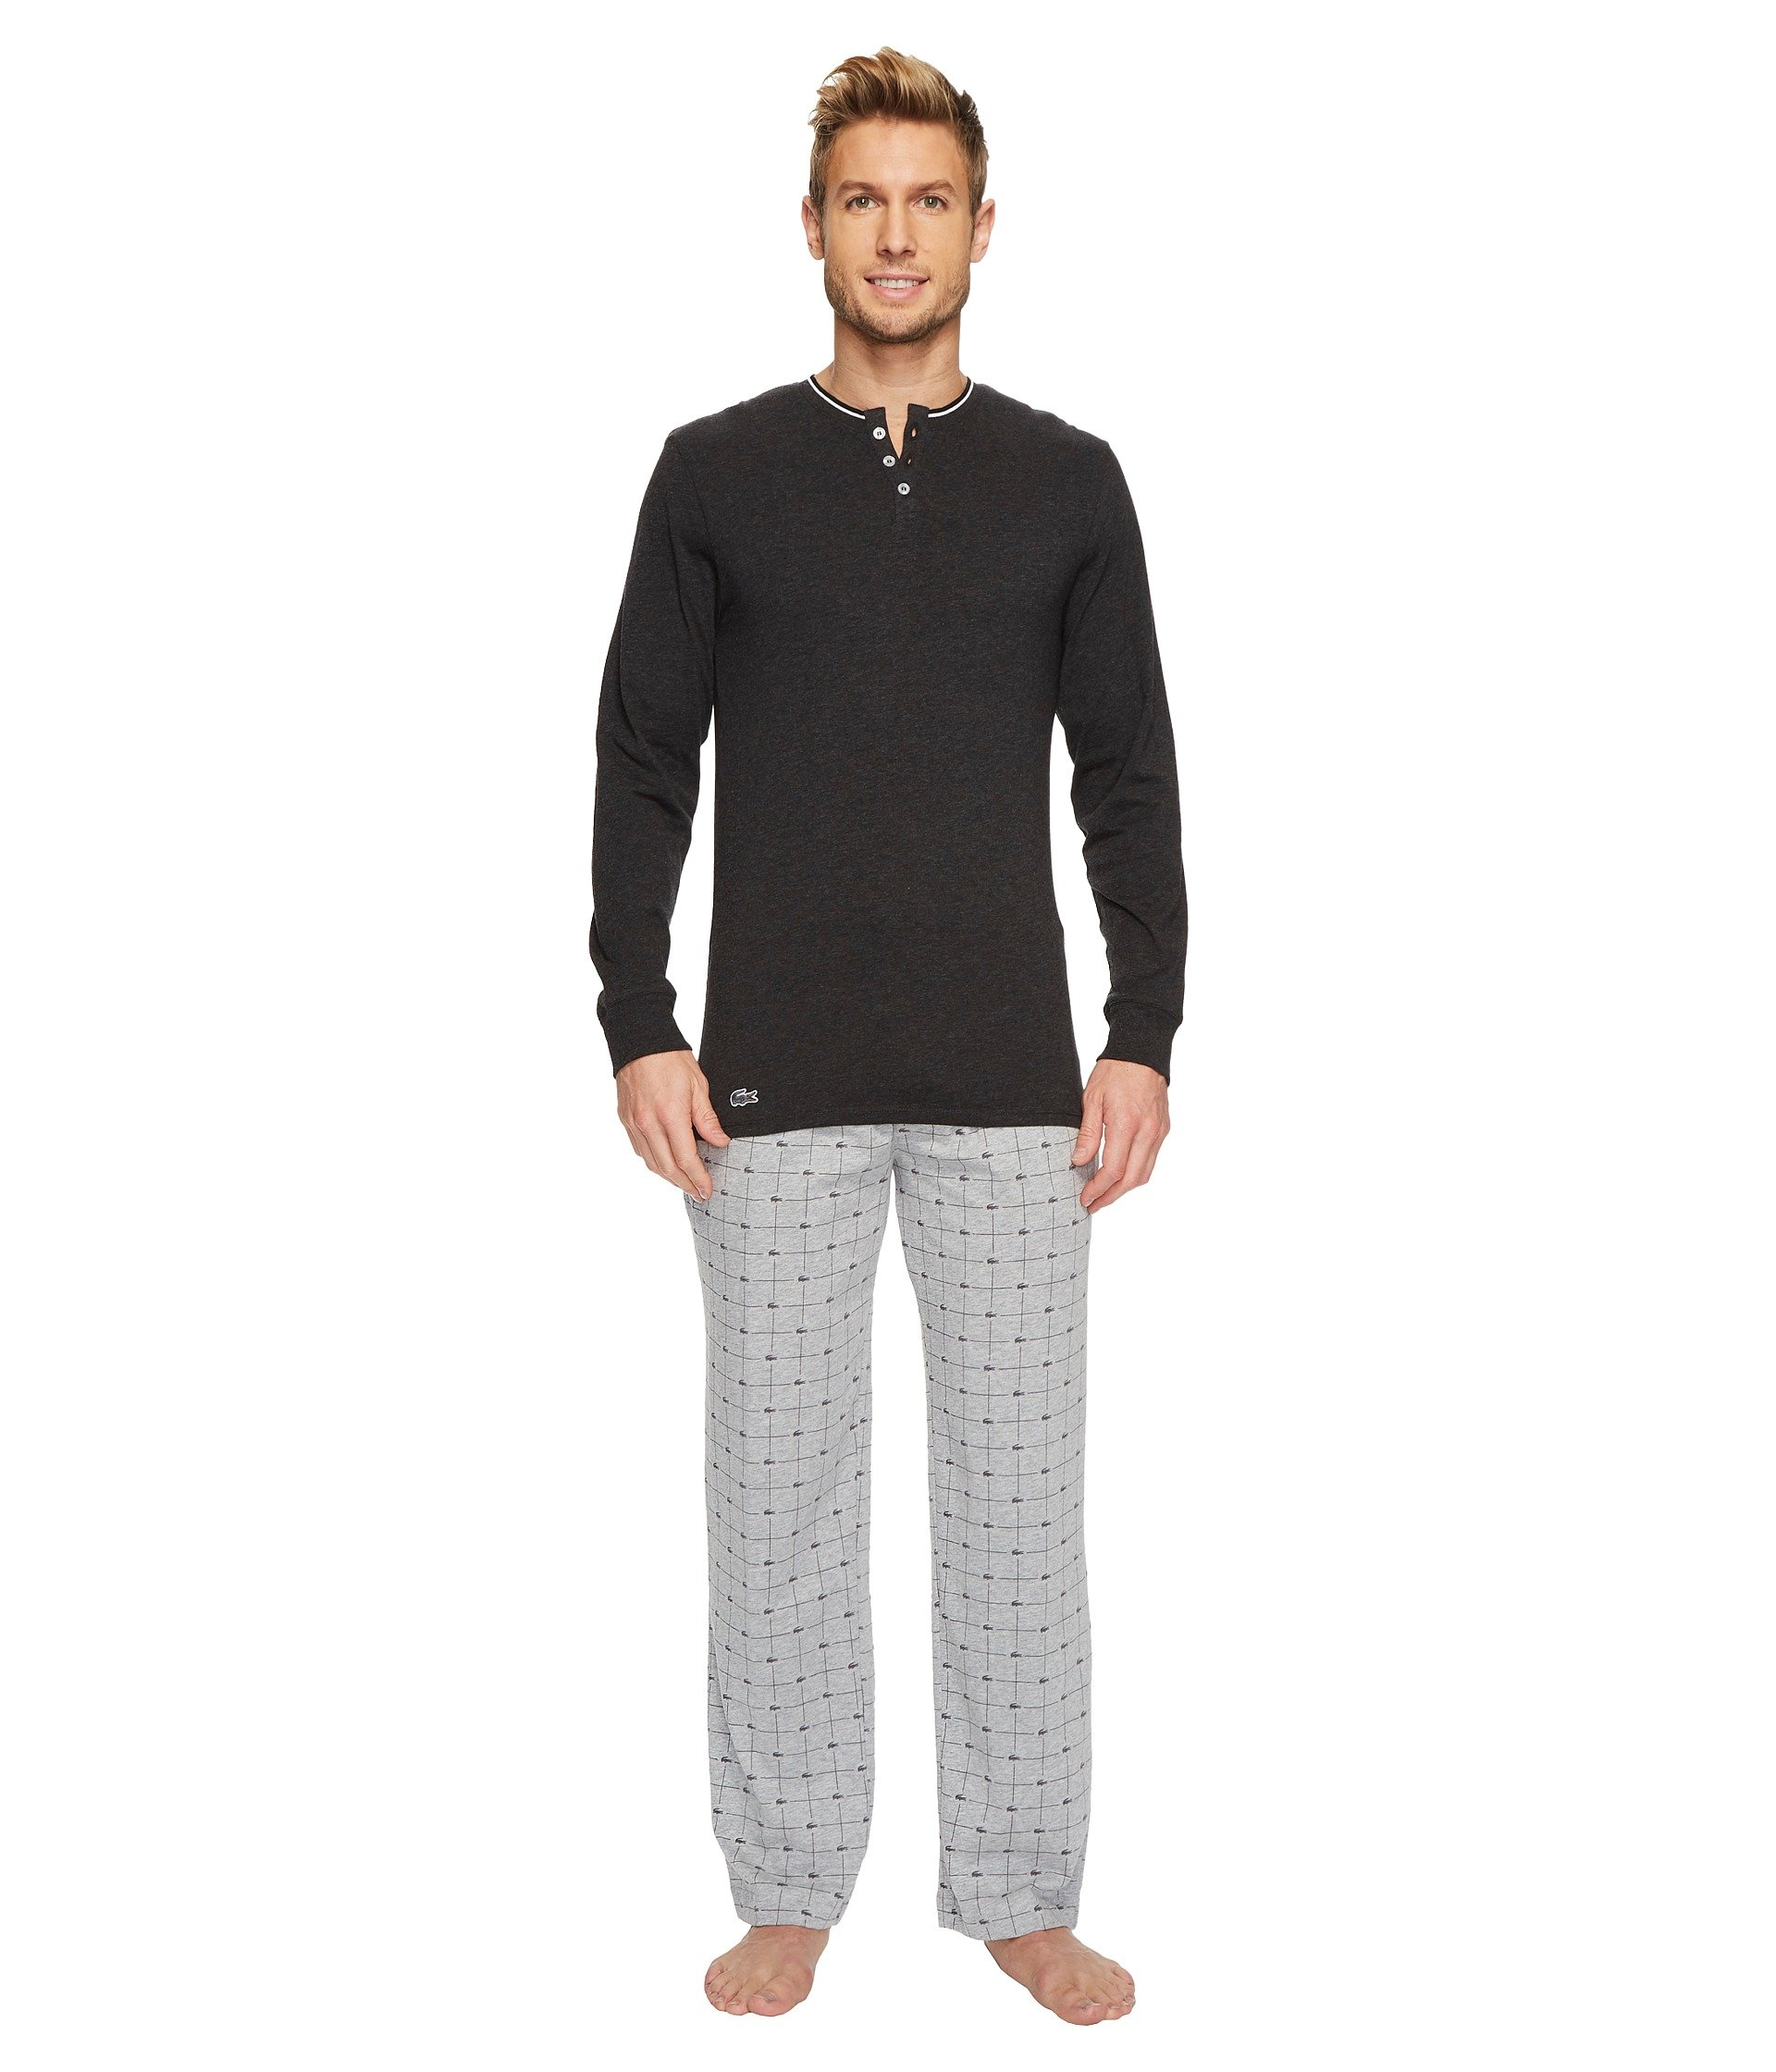 Pijama para Hombre Lacoste Cotton Jersey Long Sleeve Henley and Signature Print Knit Pants  + Lacoste en VeoyCompro.net